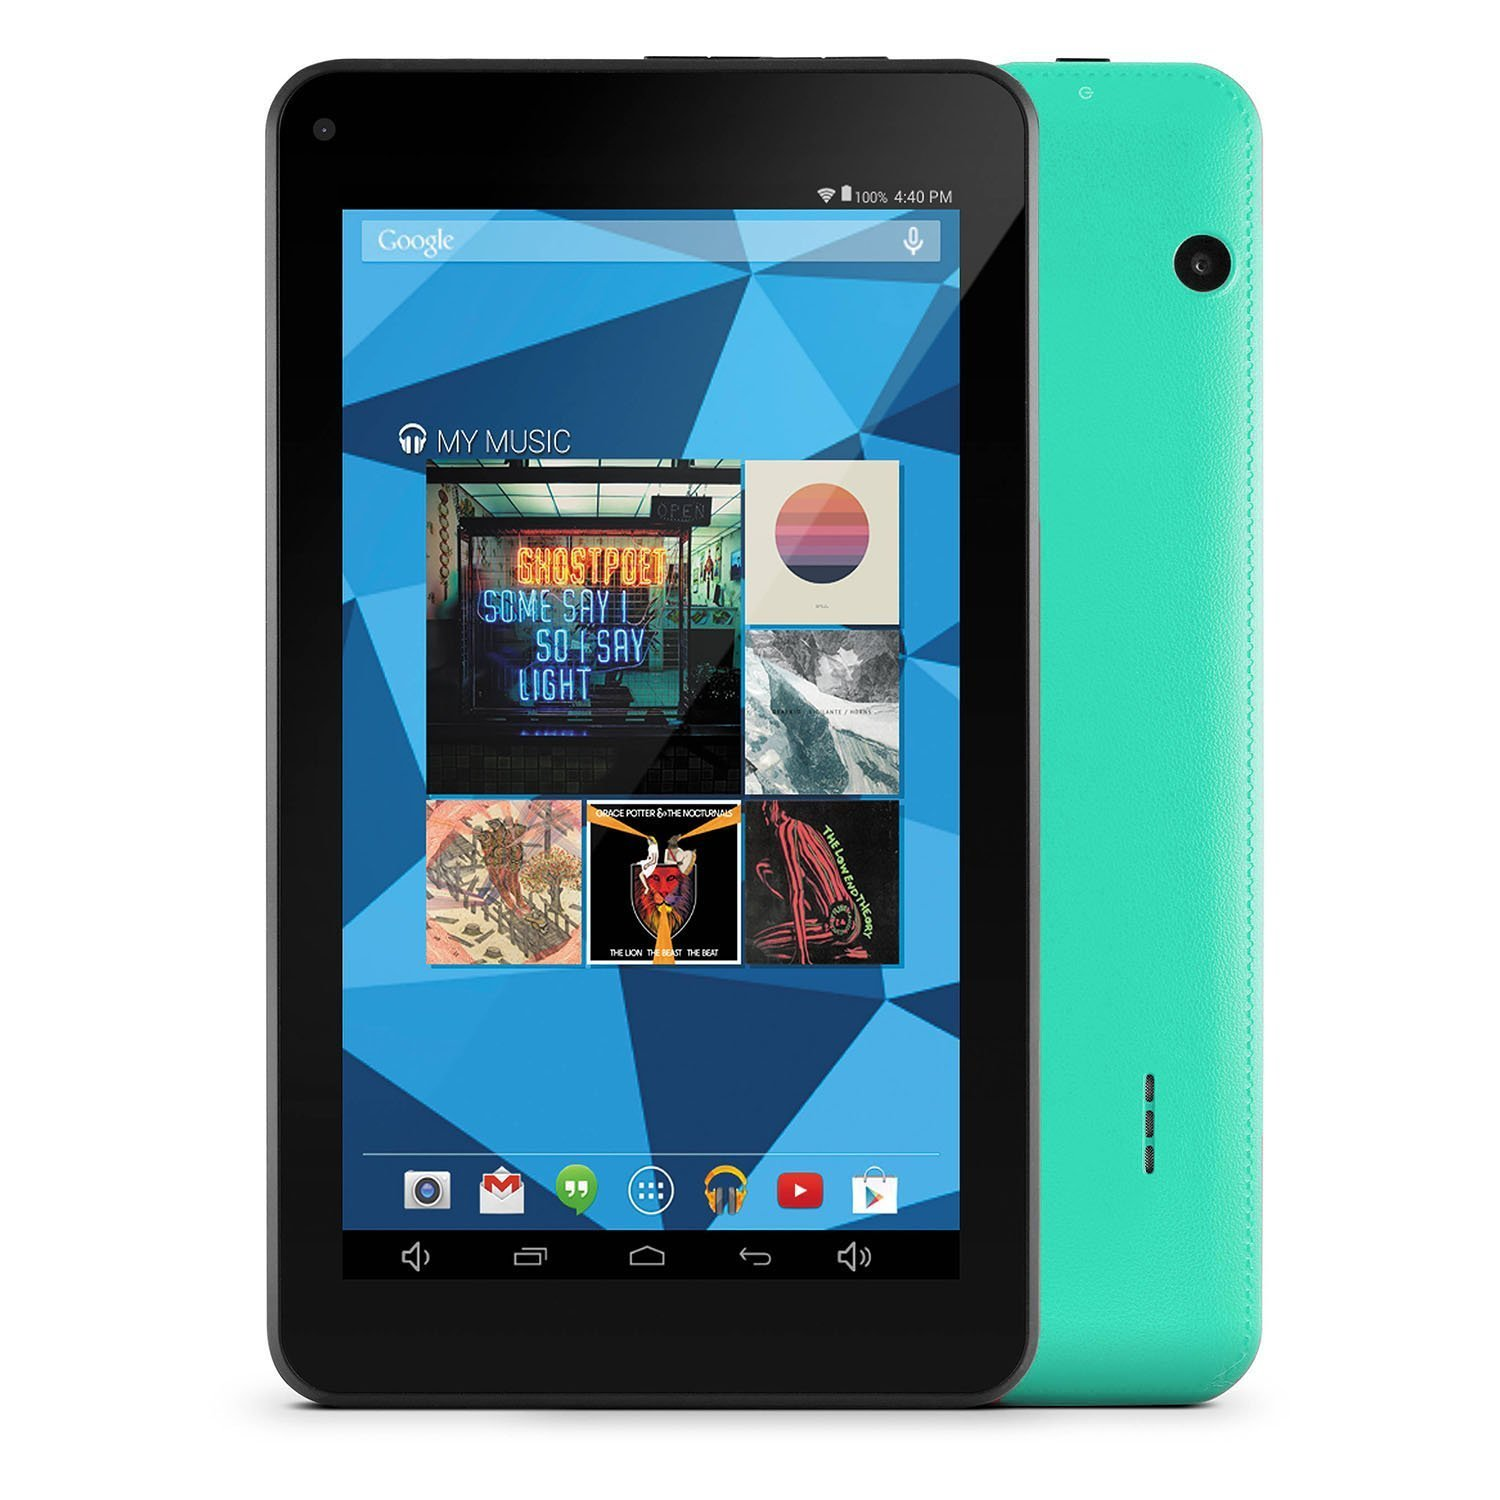 "Ematic EGQ367BD with WiFi 7"" Touchscreen HD Quad-Core Tablet PC Featuring Android 5.0 (Lollipop) Operating System, Teal"